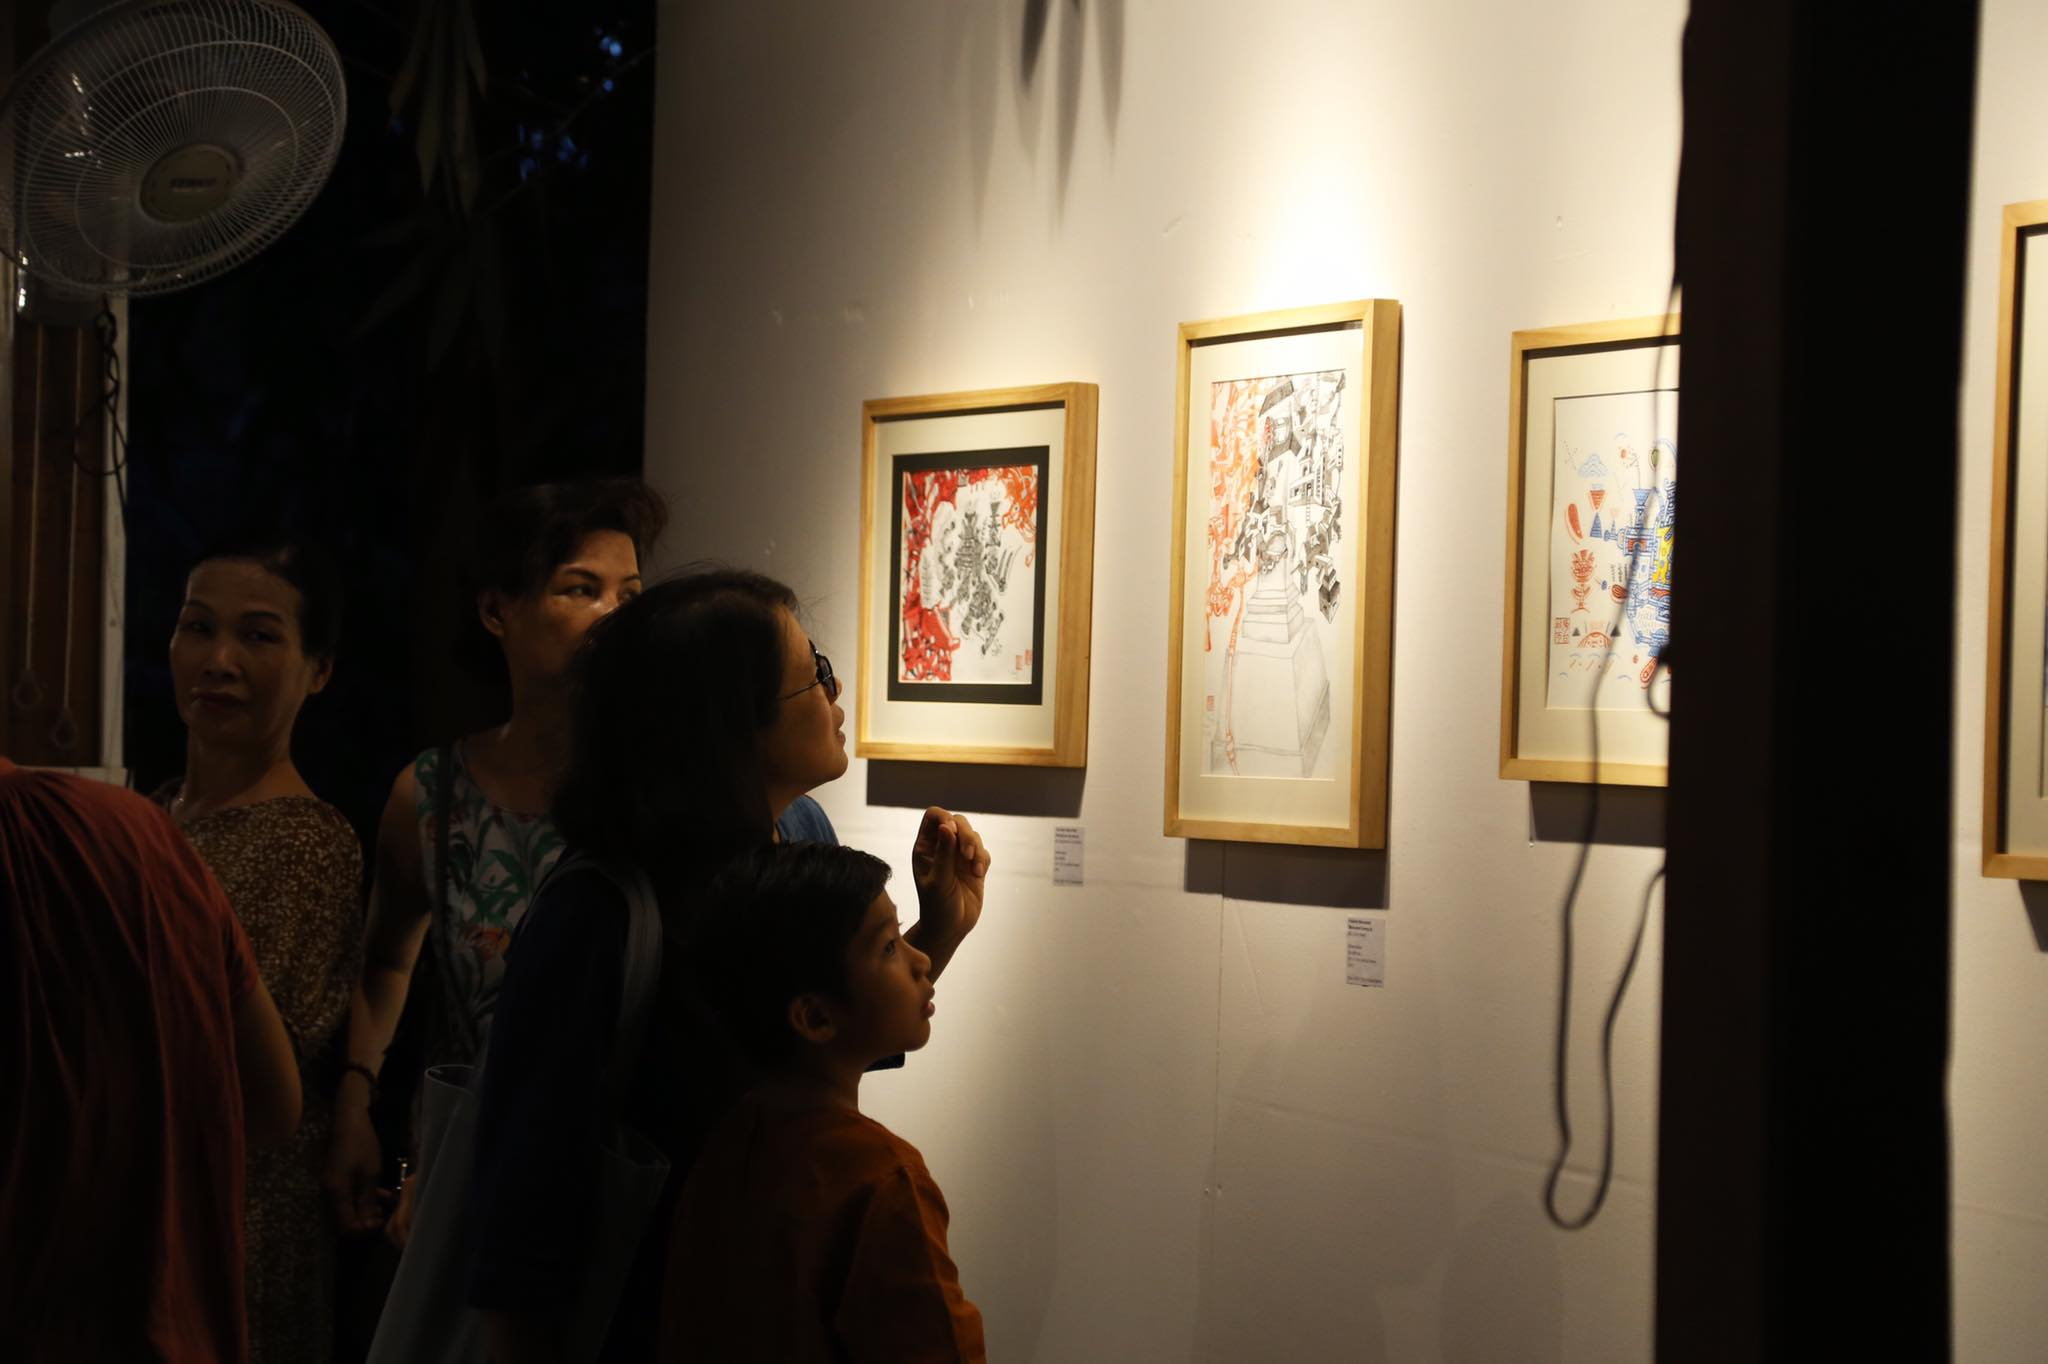 Visitors watch artworks displayed at the Molding Island City exhibition in Hoi An, central Vietnam